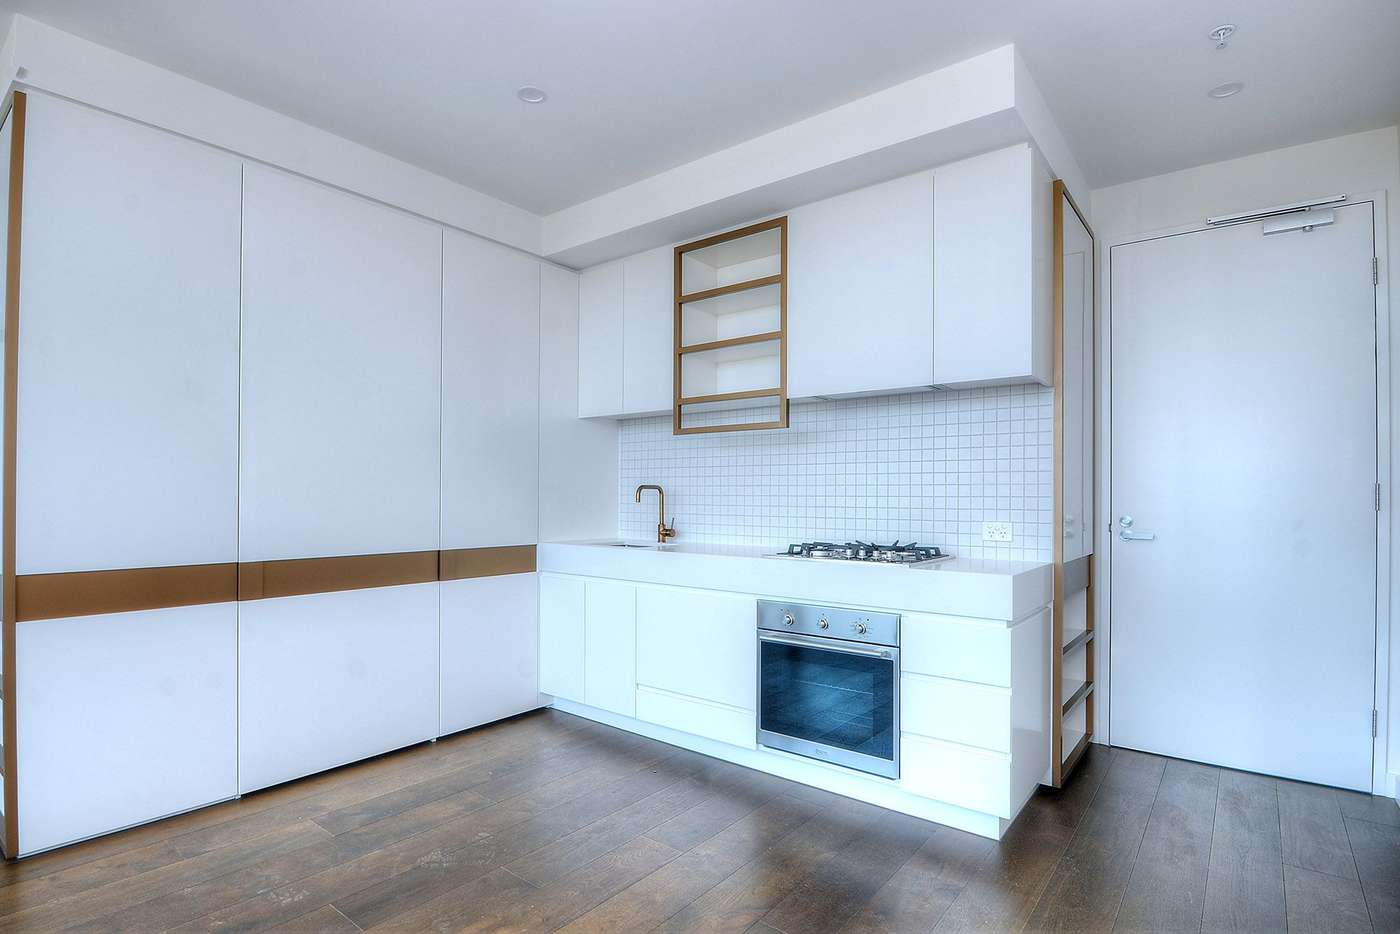 Main view of Homely apartment listing, 1112/52-54 O'Sullivan Road, Glen Waverley VIC 3150